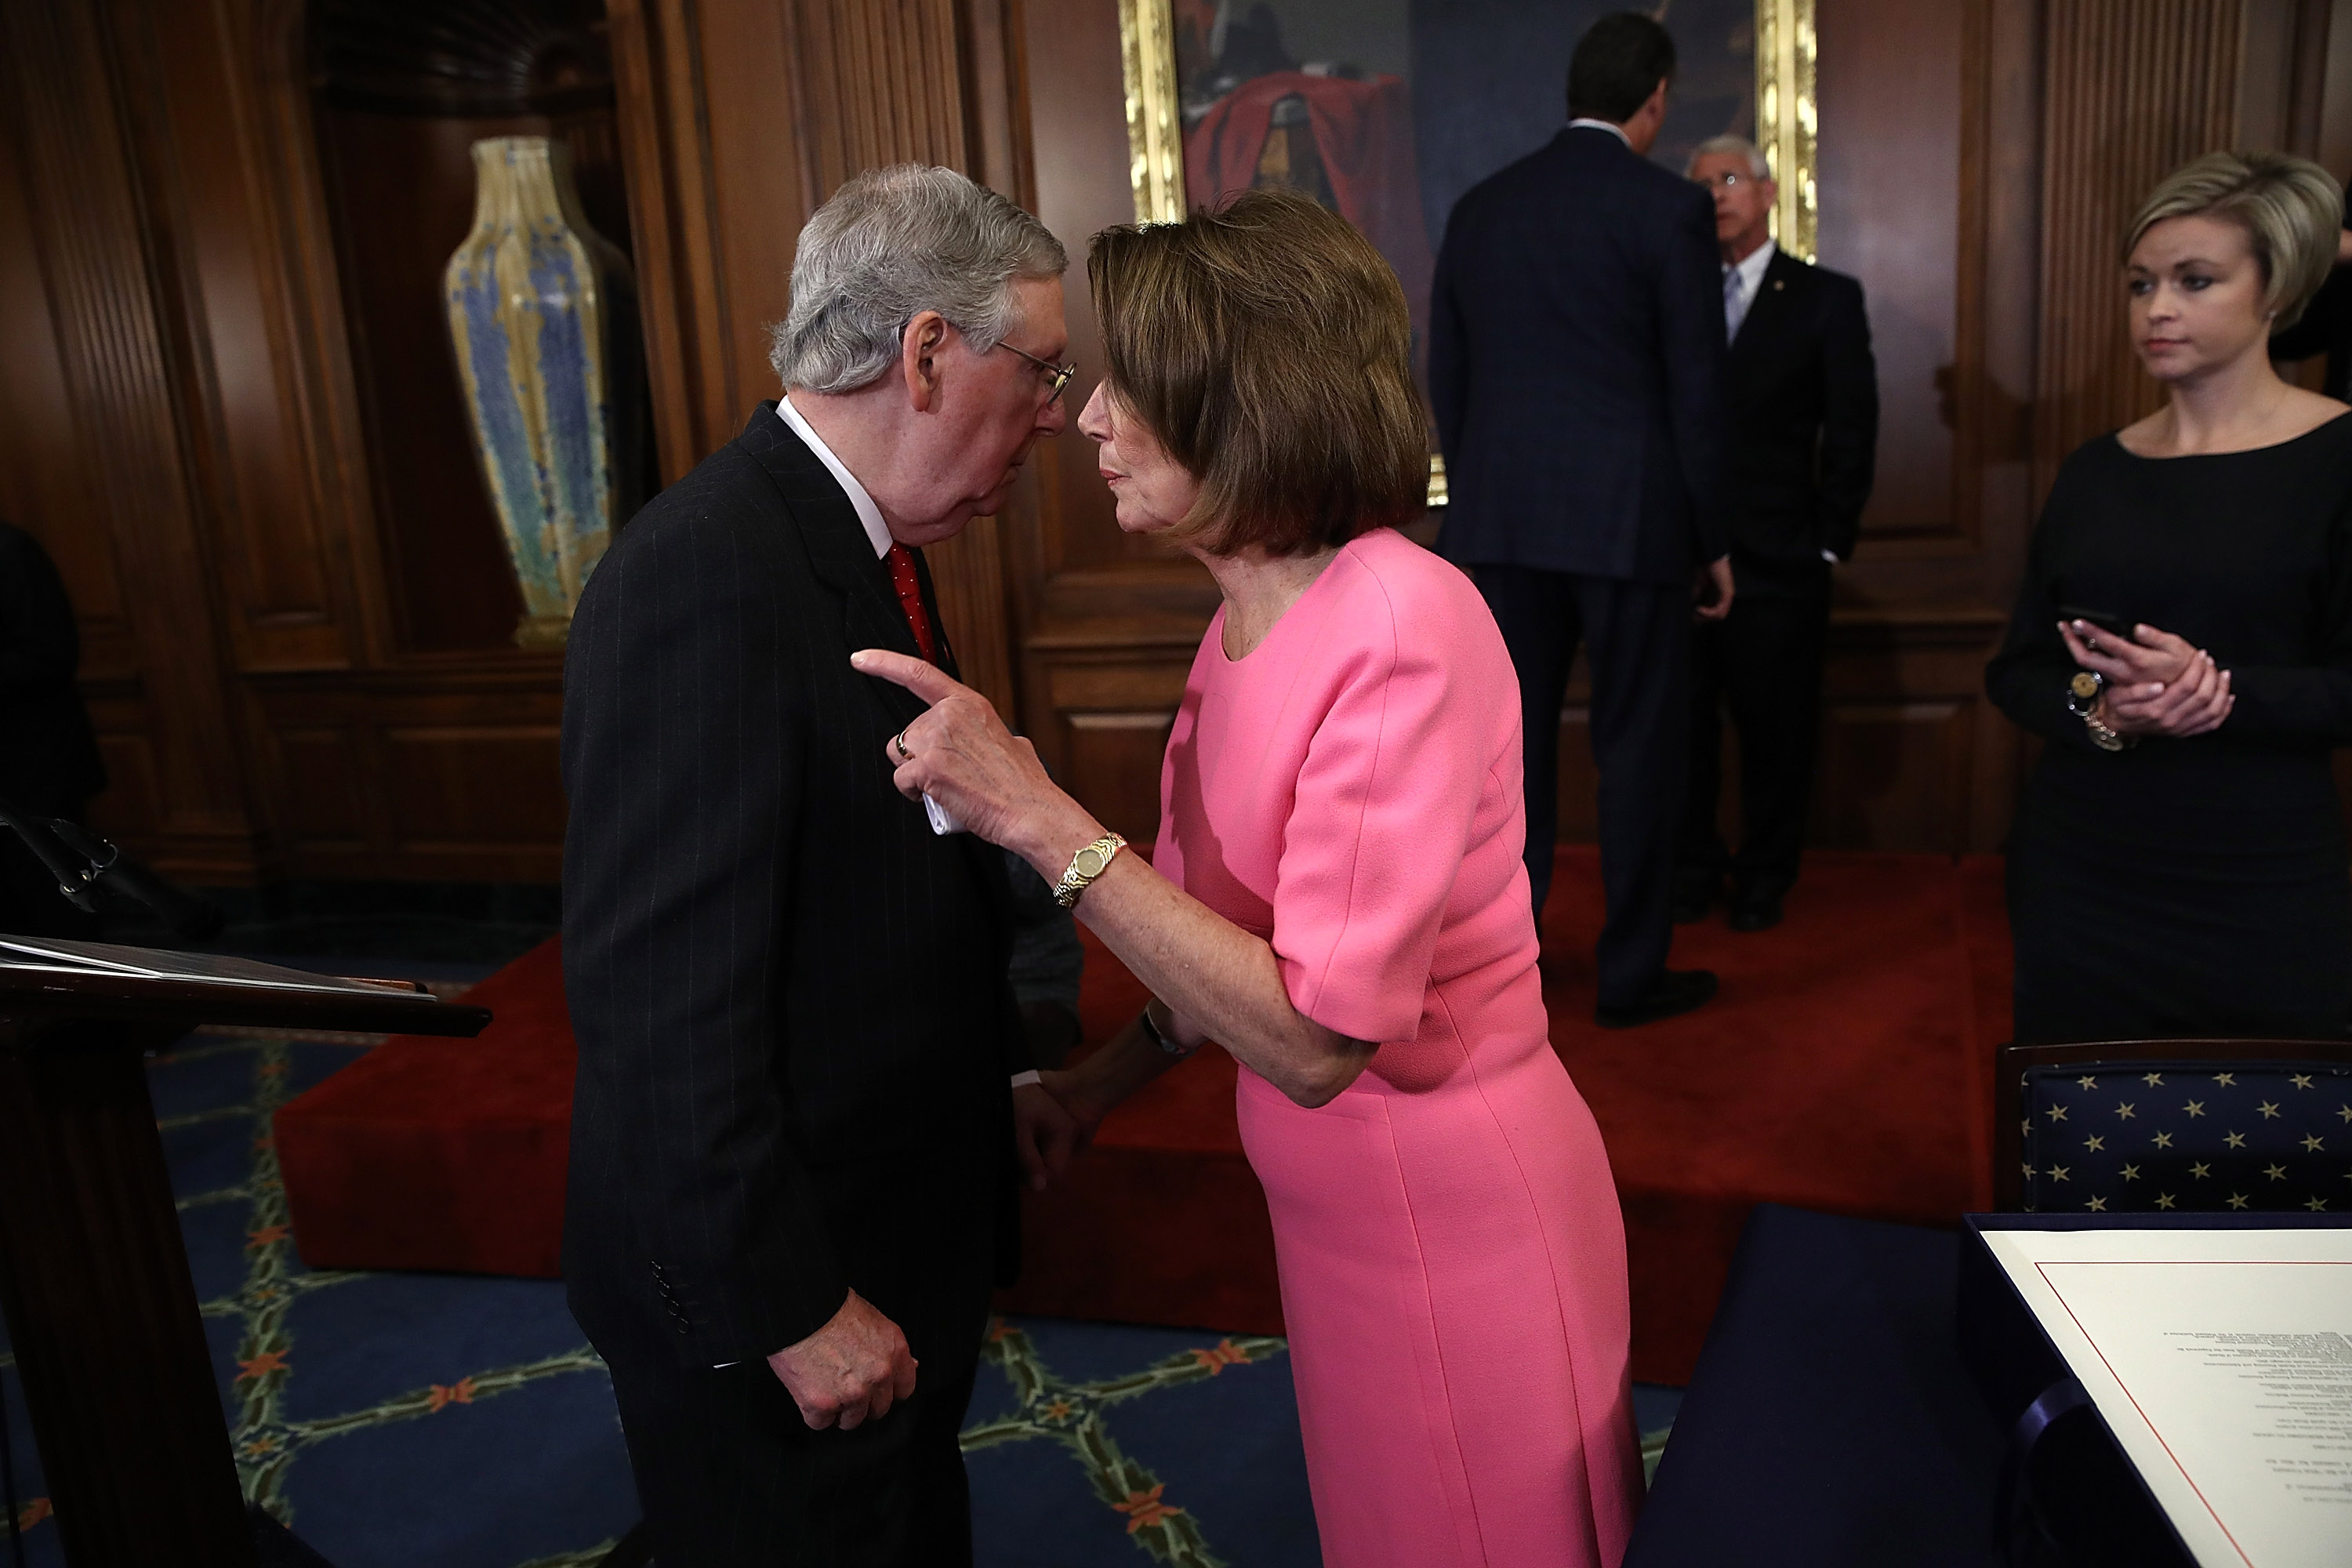 WASHINGTON, DC - DECEMBER 08:  U.S. Senate Majority Leader Mitch McConnell (R-KY) speaks with House Minority Leader Rep. Nancy Pelosi (R) (D-CA) following an event marking the passage of the 21st Century Cures Act at the U.S. Capitol December 8, 2016 in Washington, DC. The bill, passed with strong bipartisan support, provides funding for cancer research, the fight against the epidemic of opioid abuse, mental health treatment, aids the Food and Drug Administration in expediting drug approvals and pushes for better use of technology in medicine.  (Photo by Win McNamee/Getty Images)